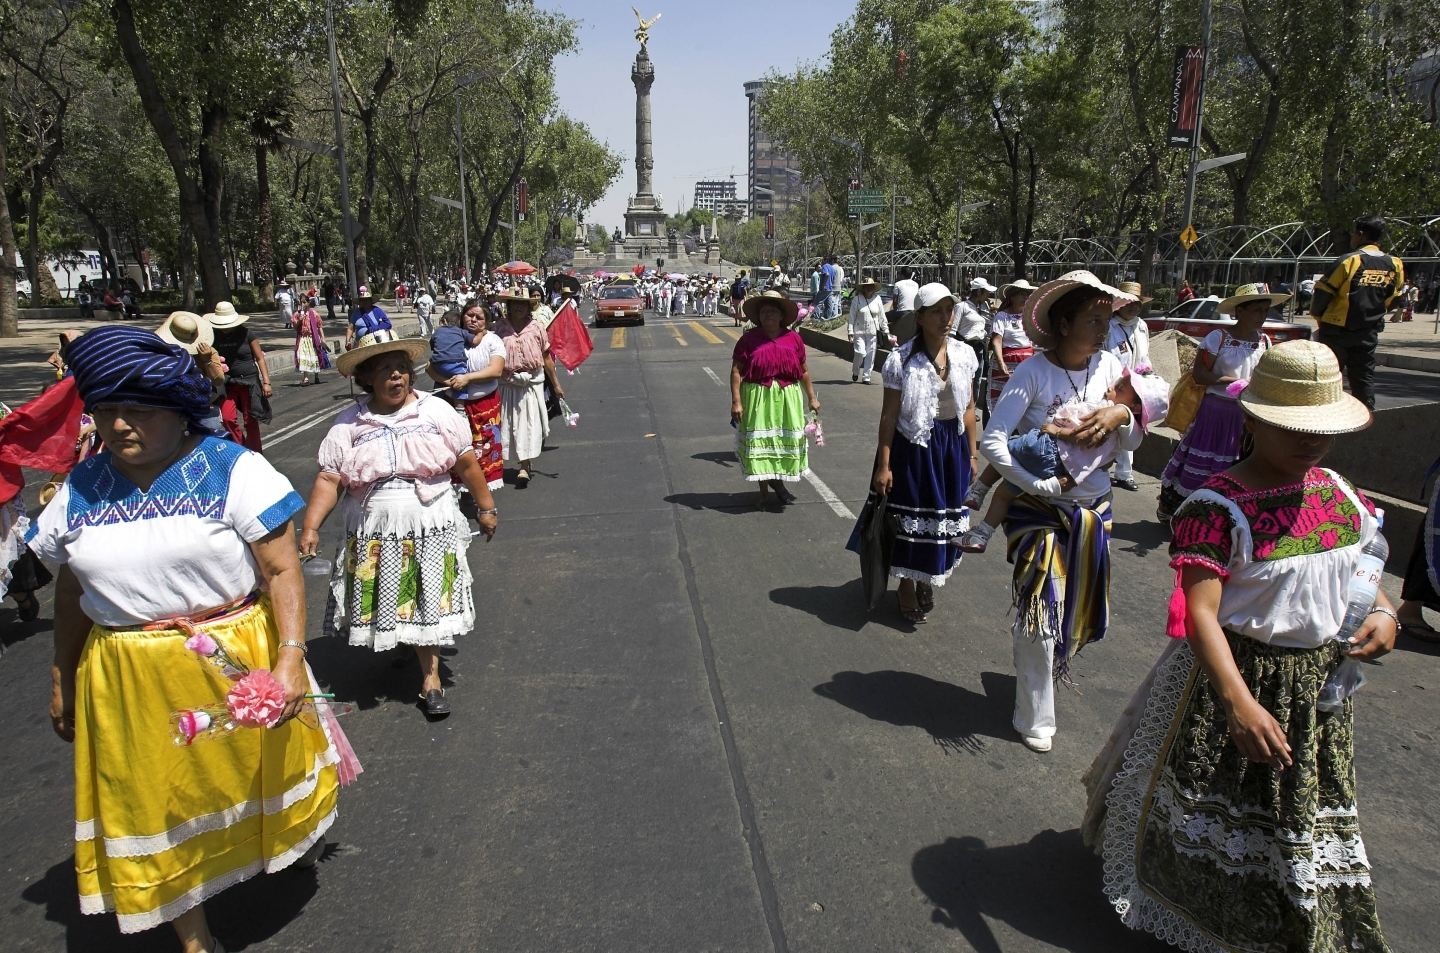 Women march through Mexico City on International Women's Day. (AP Photo/Gregory Bull)